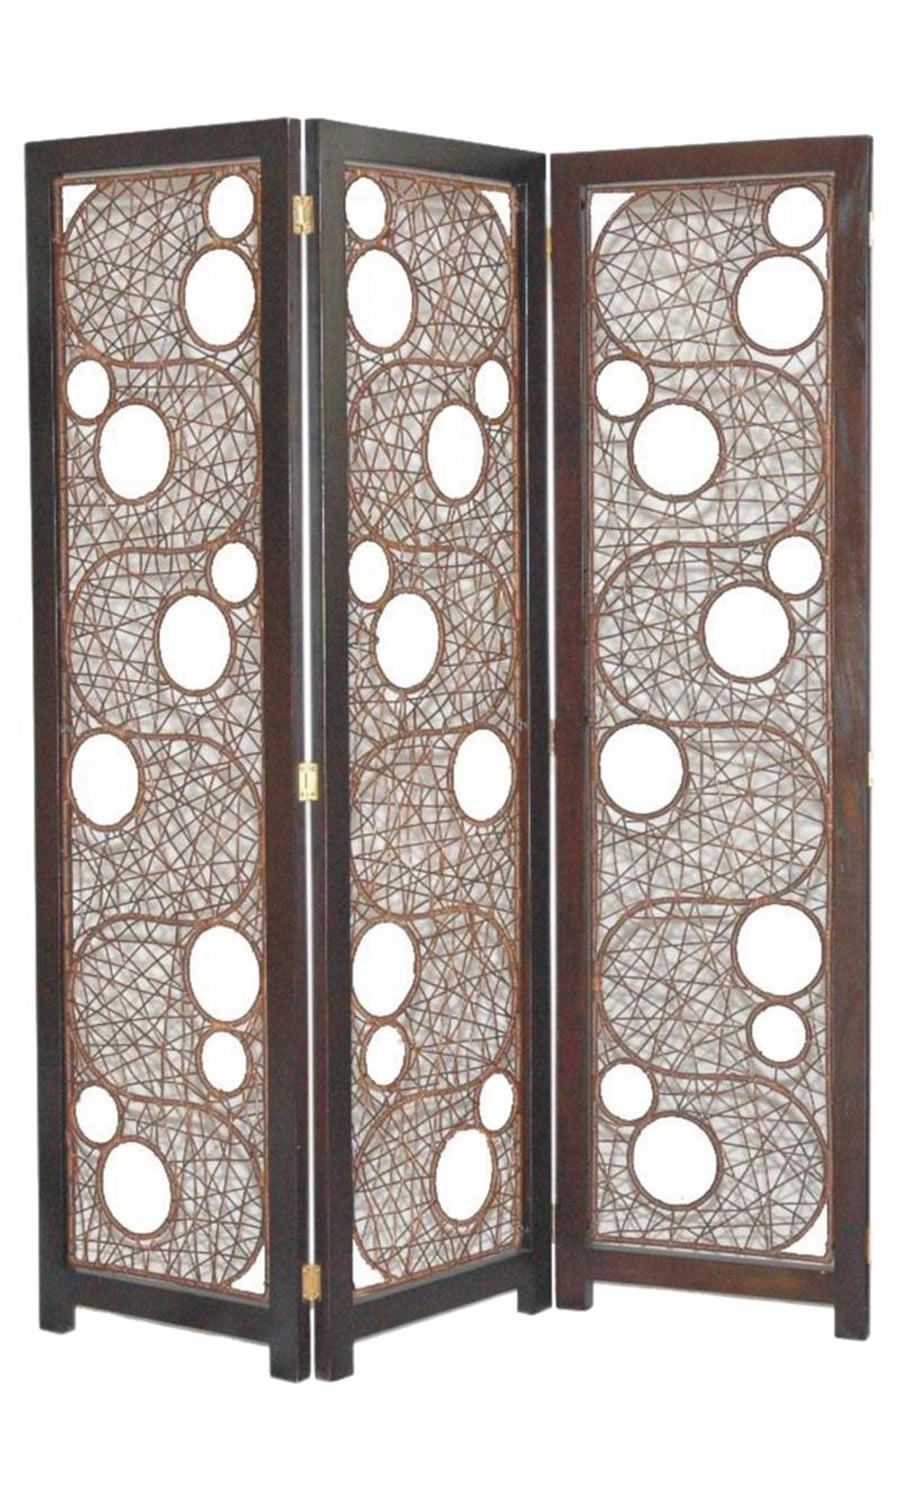 Unique room dividers for home accessories cascade with 3 for Biombos oficina baratos